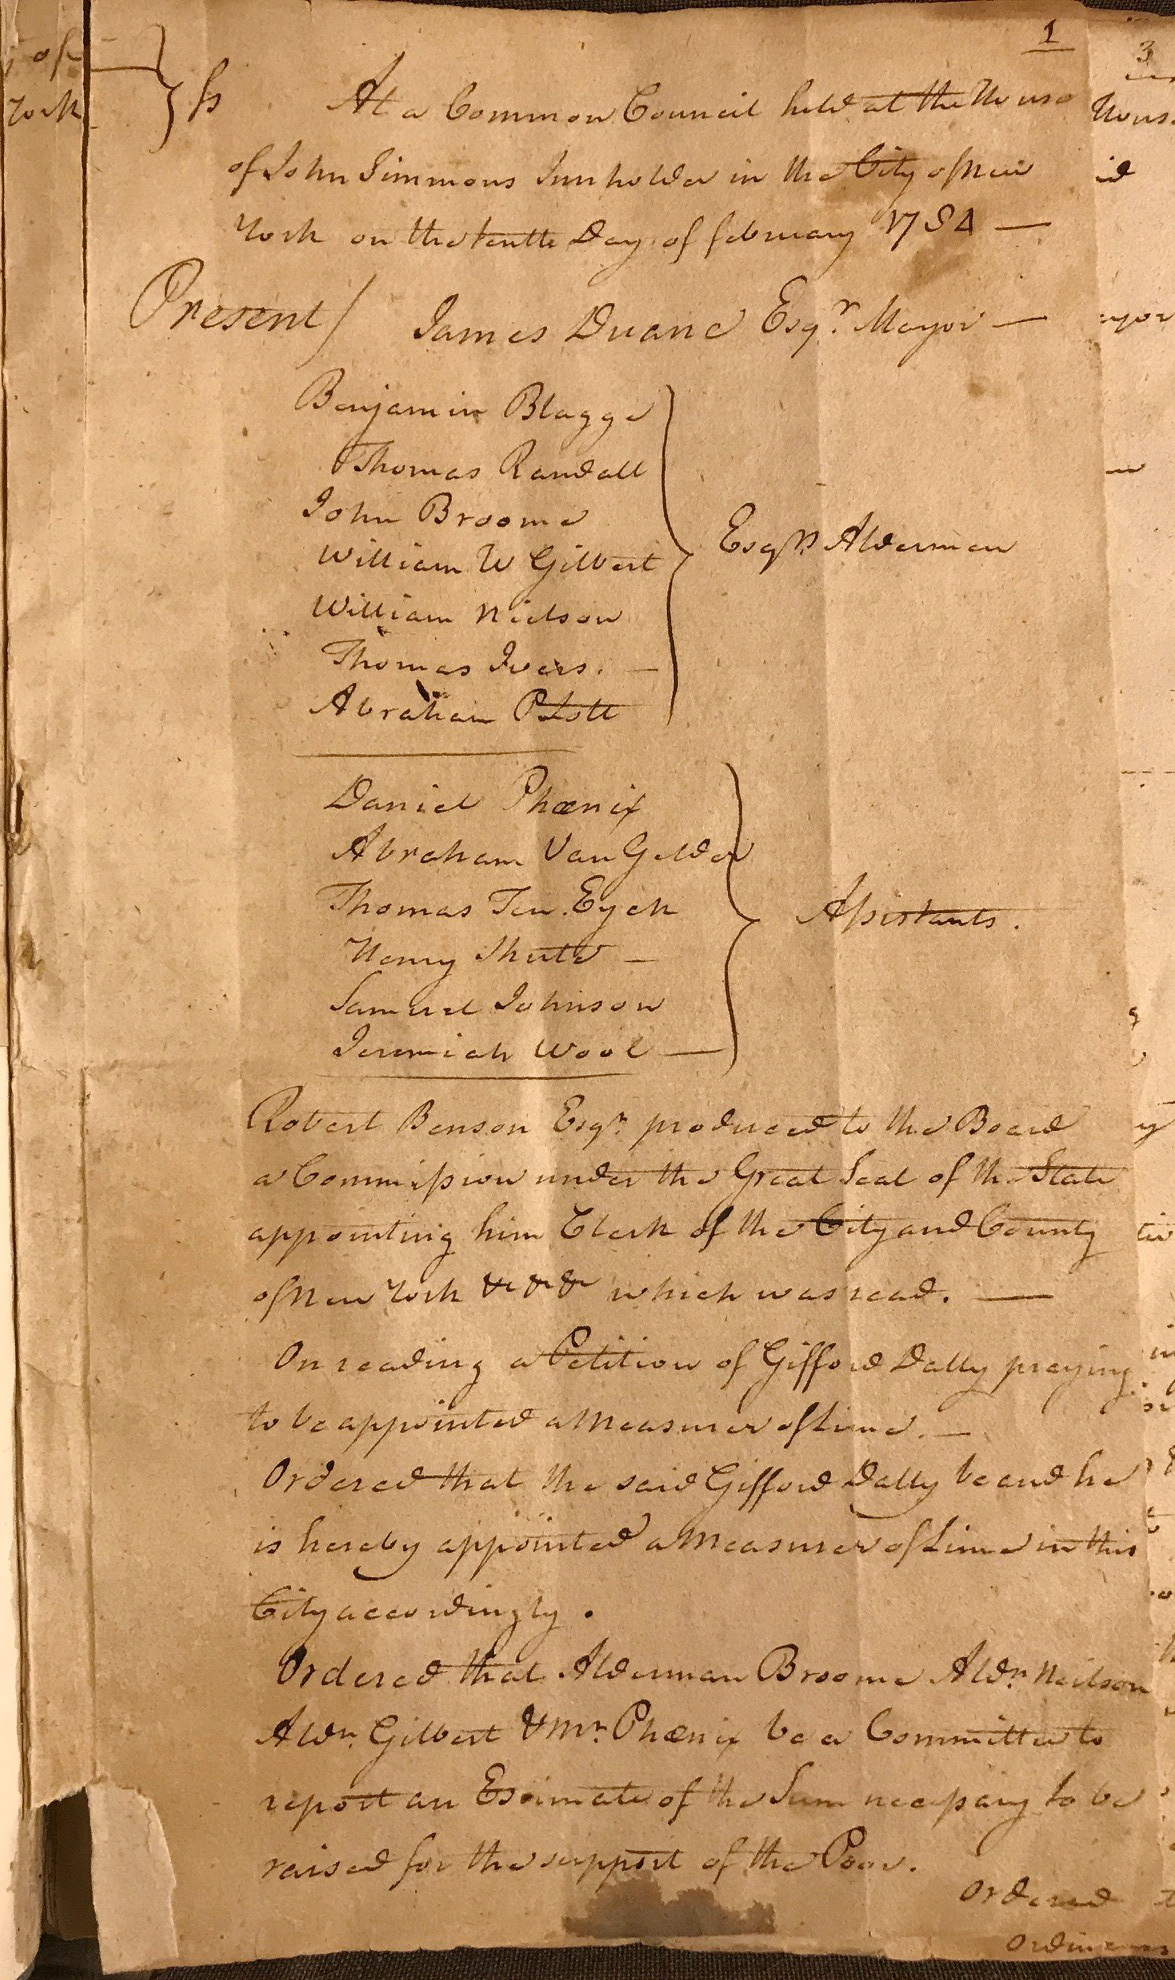 The first page of the post-war, post-colonial Common Council minutes, from February 10, 1784. Common Council Records, NYC Municipal Archives.